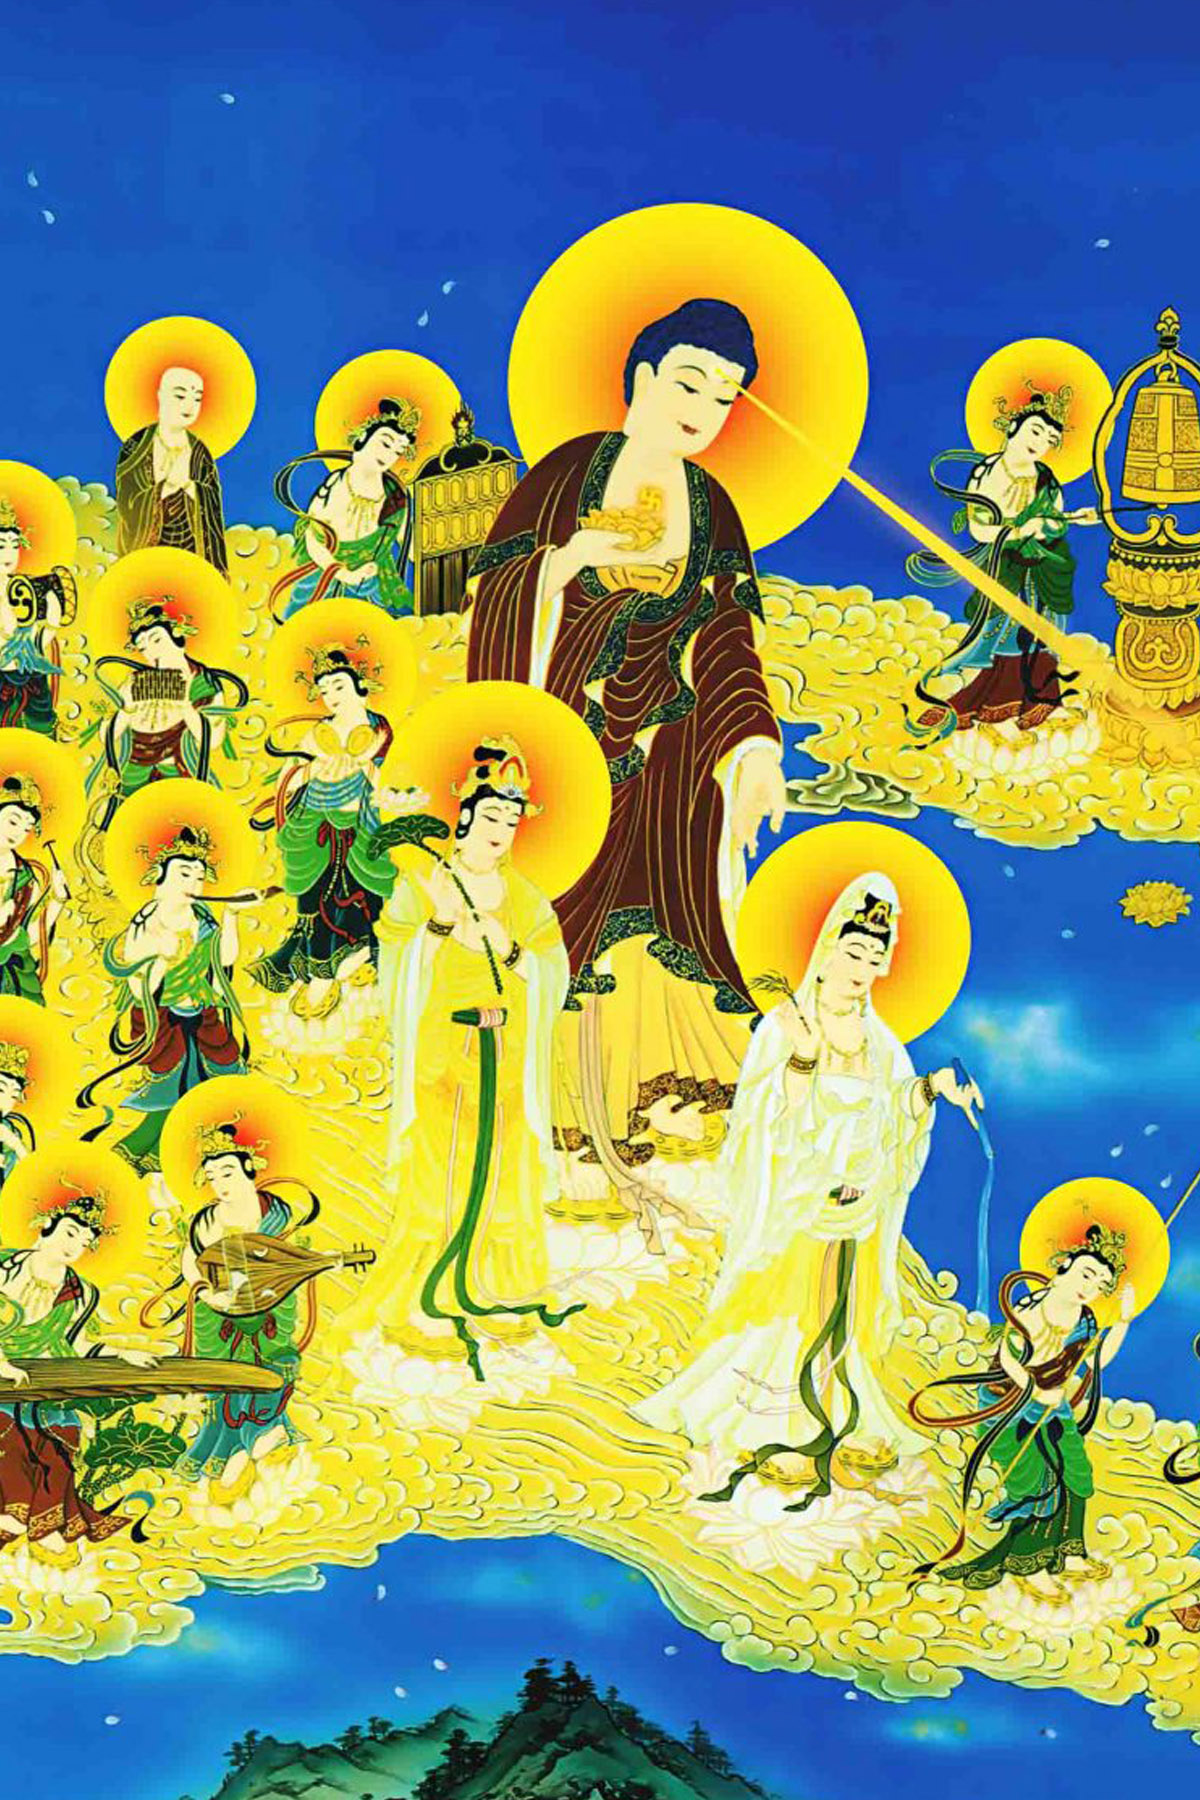 Tôn ảnh Tây Phương tiếp dẫn chất lượng cao | HD Images of Amitabha and his holy entourage coming to welcome and lead the pure land | 西方極樂世界